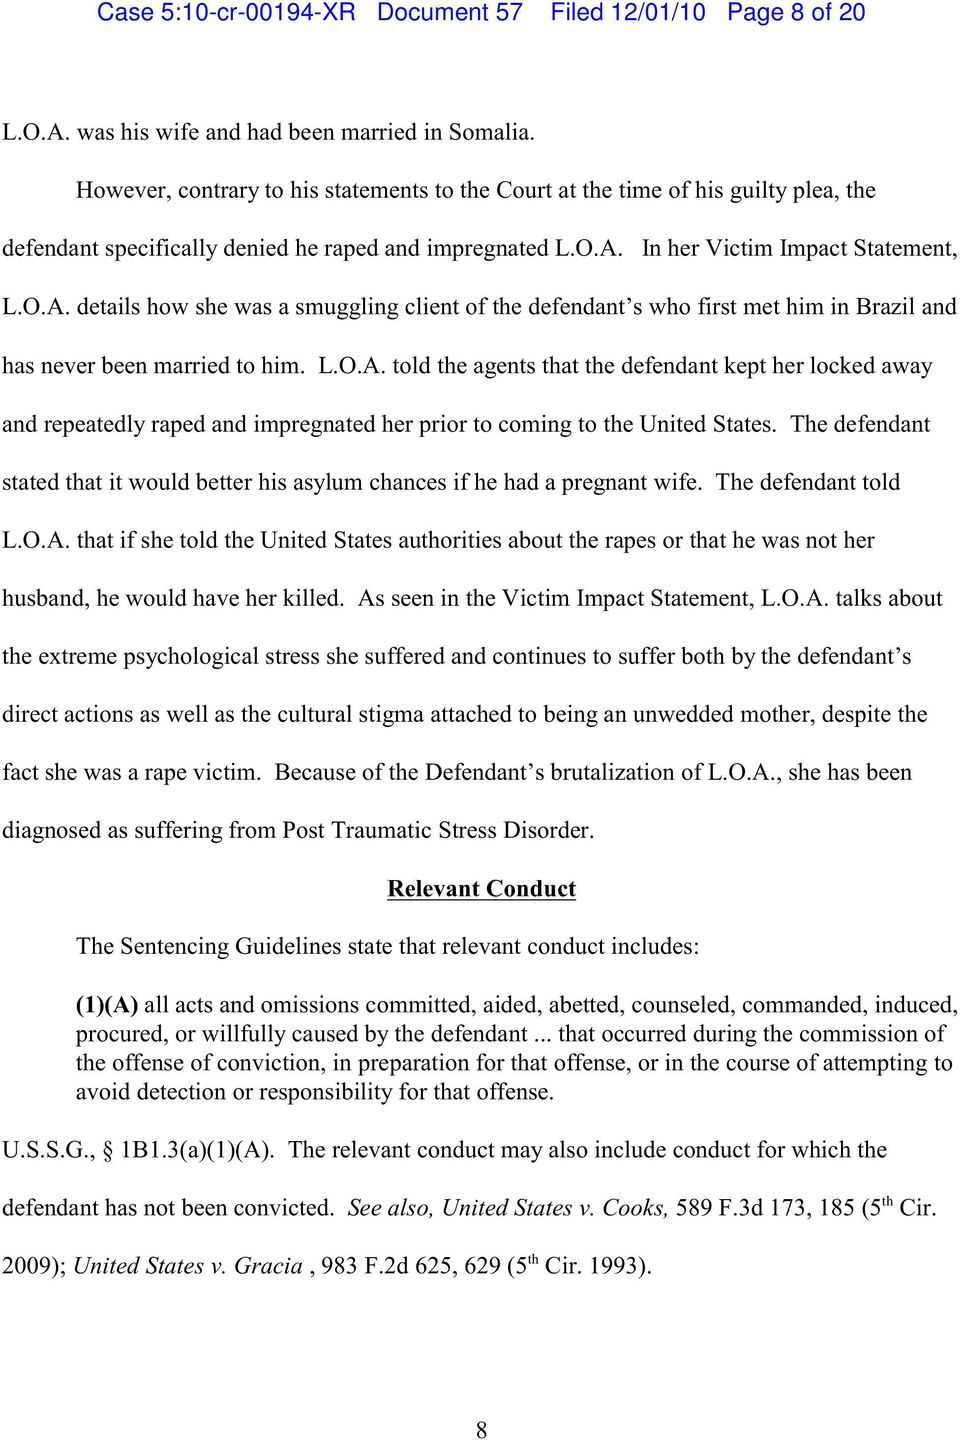 In her Victim Impact Statement, L.O.A. details how she was a smuggling client of the defendant s who first met him in Brazil and has never been married to him. L.O.A. told the agents that the defendant kept her locked away and repeatedly raped and impregnated her prior to coming to the United States.